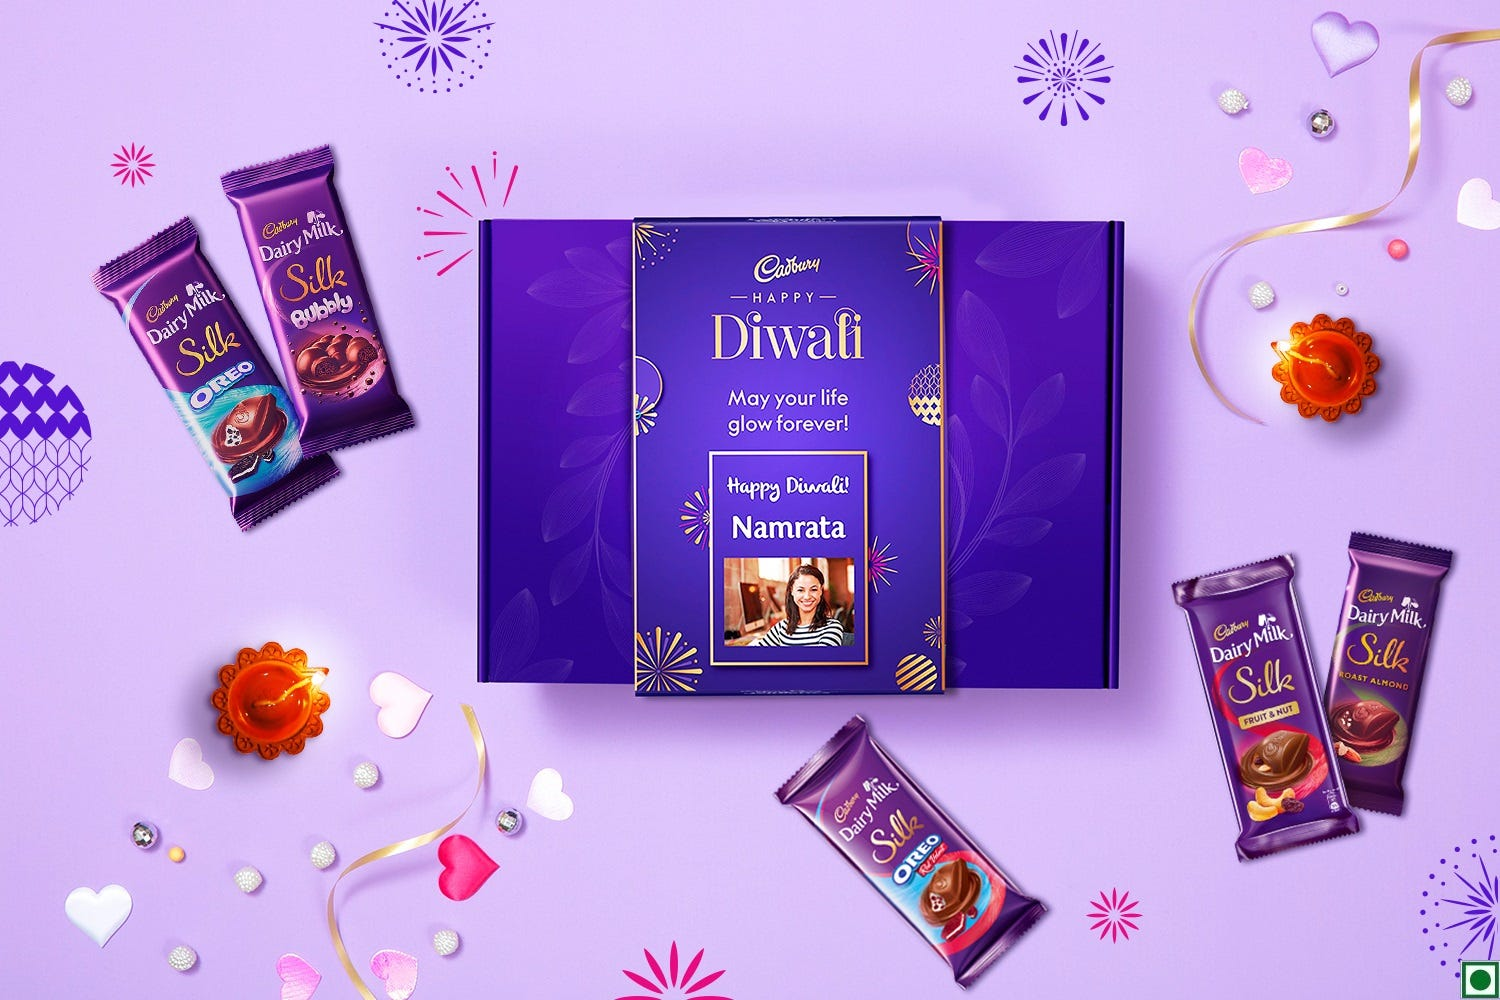 9 Diwali Gifts For In-Laws to Impress Them This Year